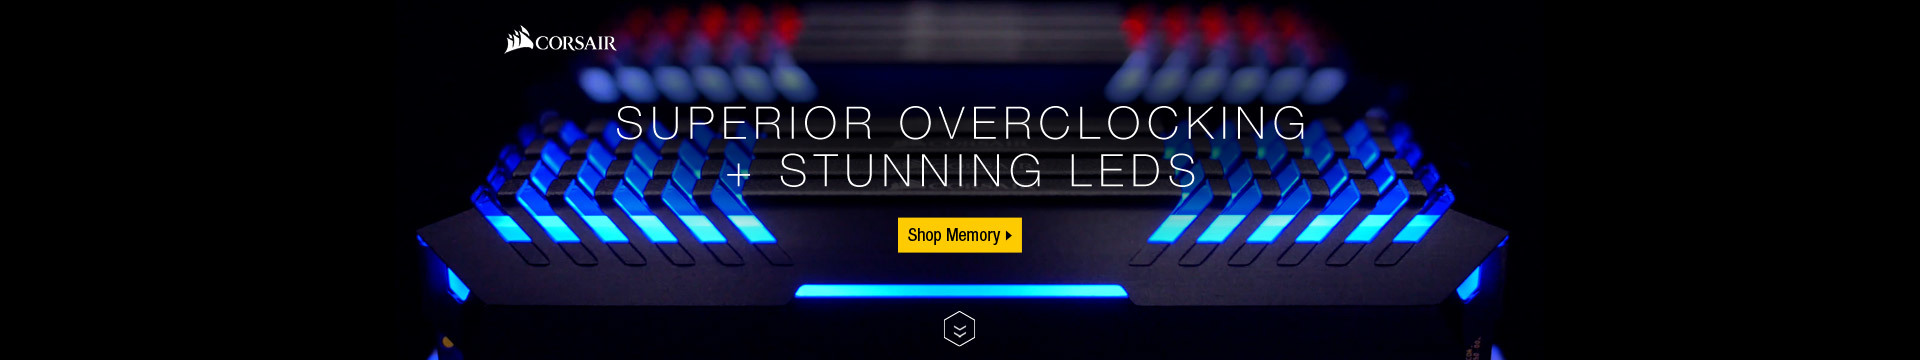 Superior Overclocking + Stunning LEDs